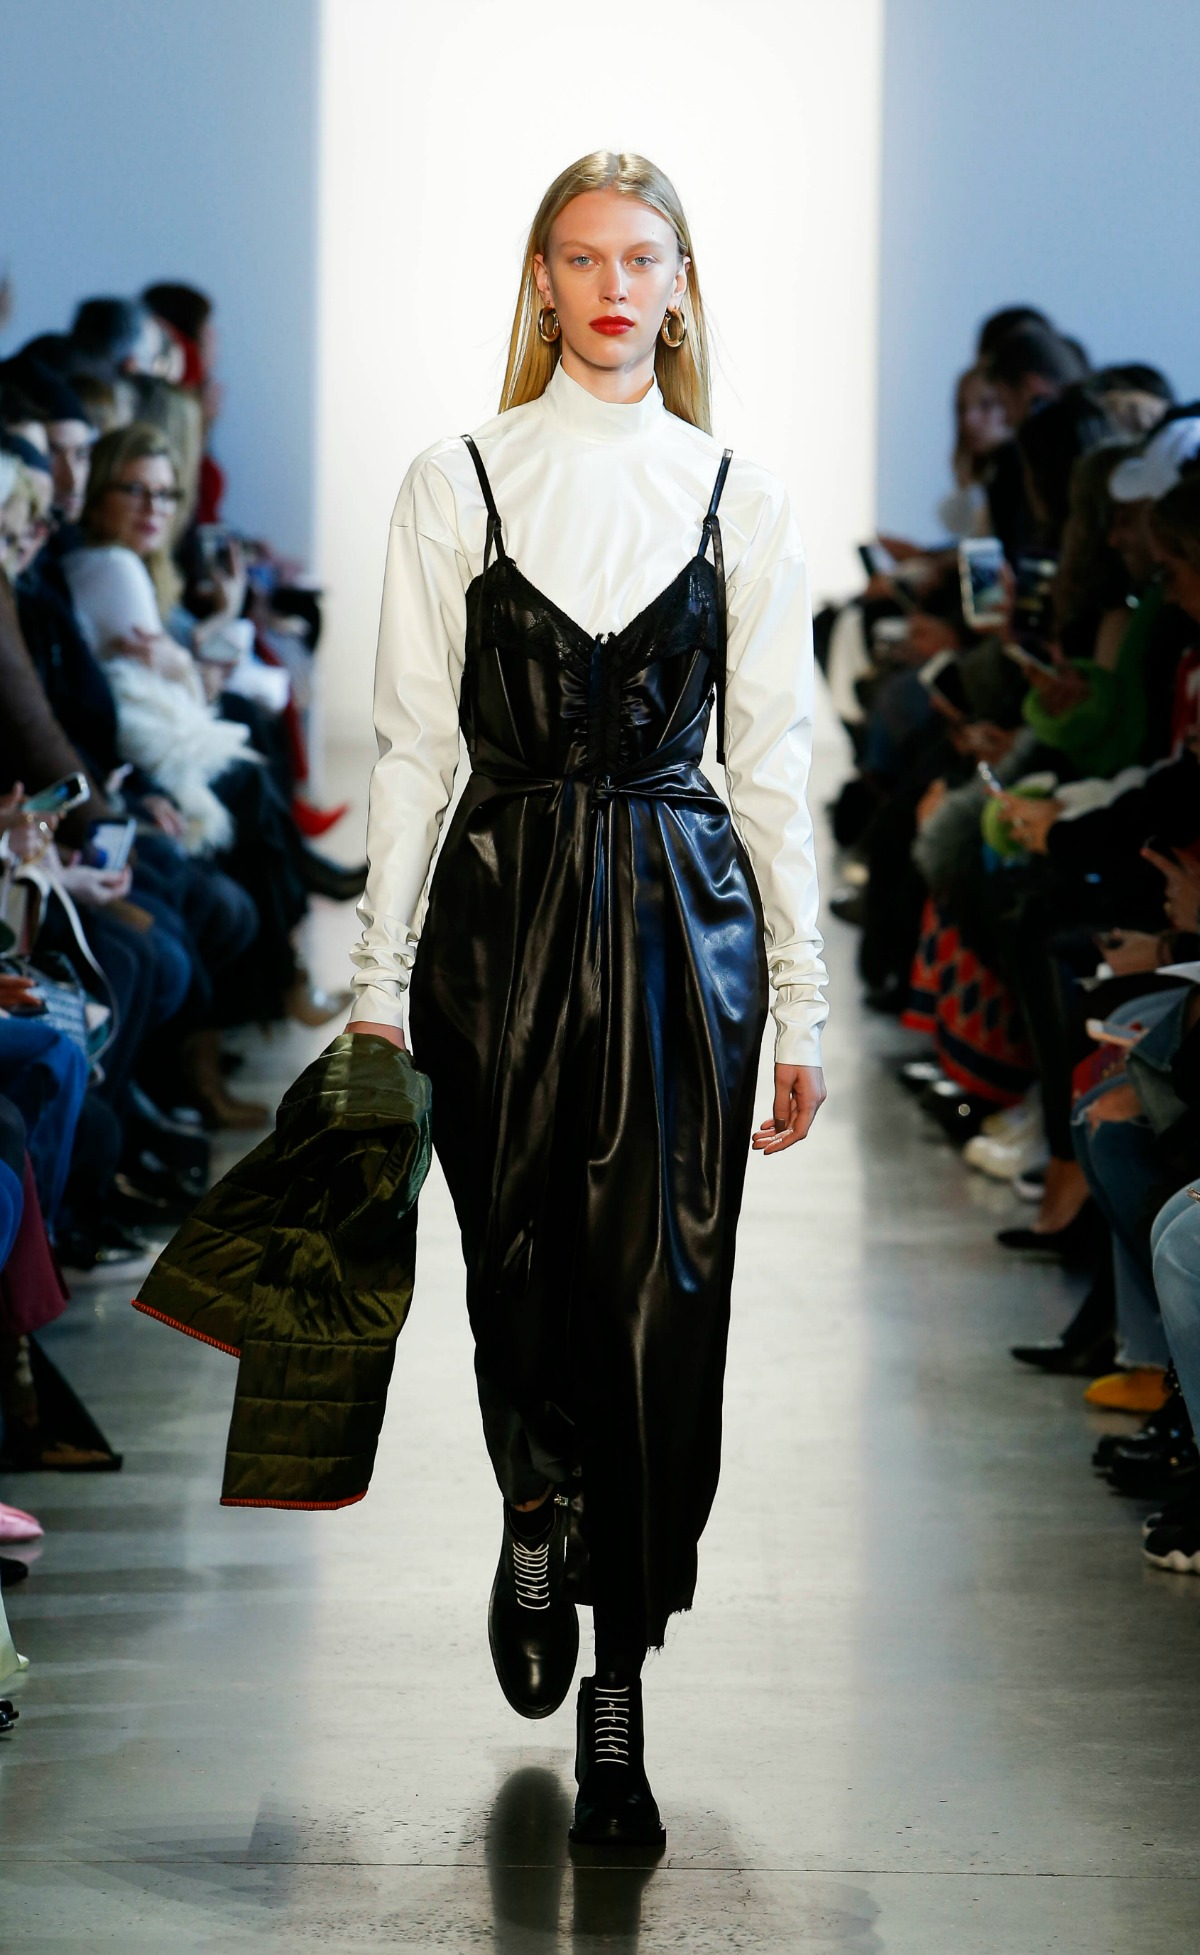 COLOVOS Fall 2018 Runway at NYFW I Faux Leather Dress and Turtleneck #NYFW #WinterFashion